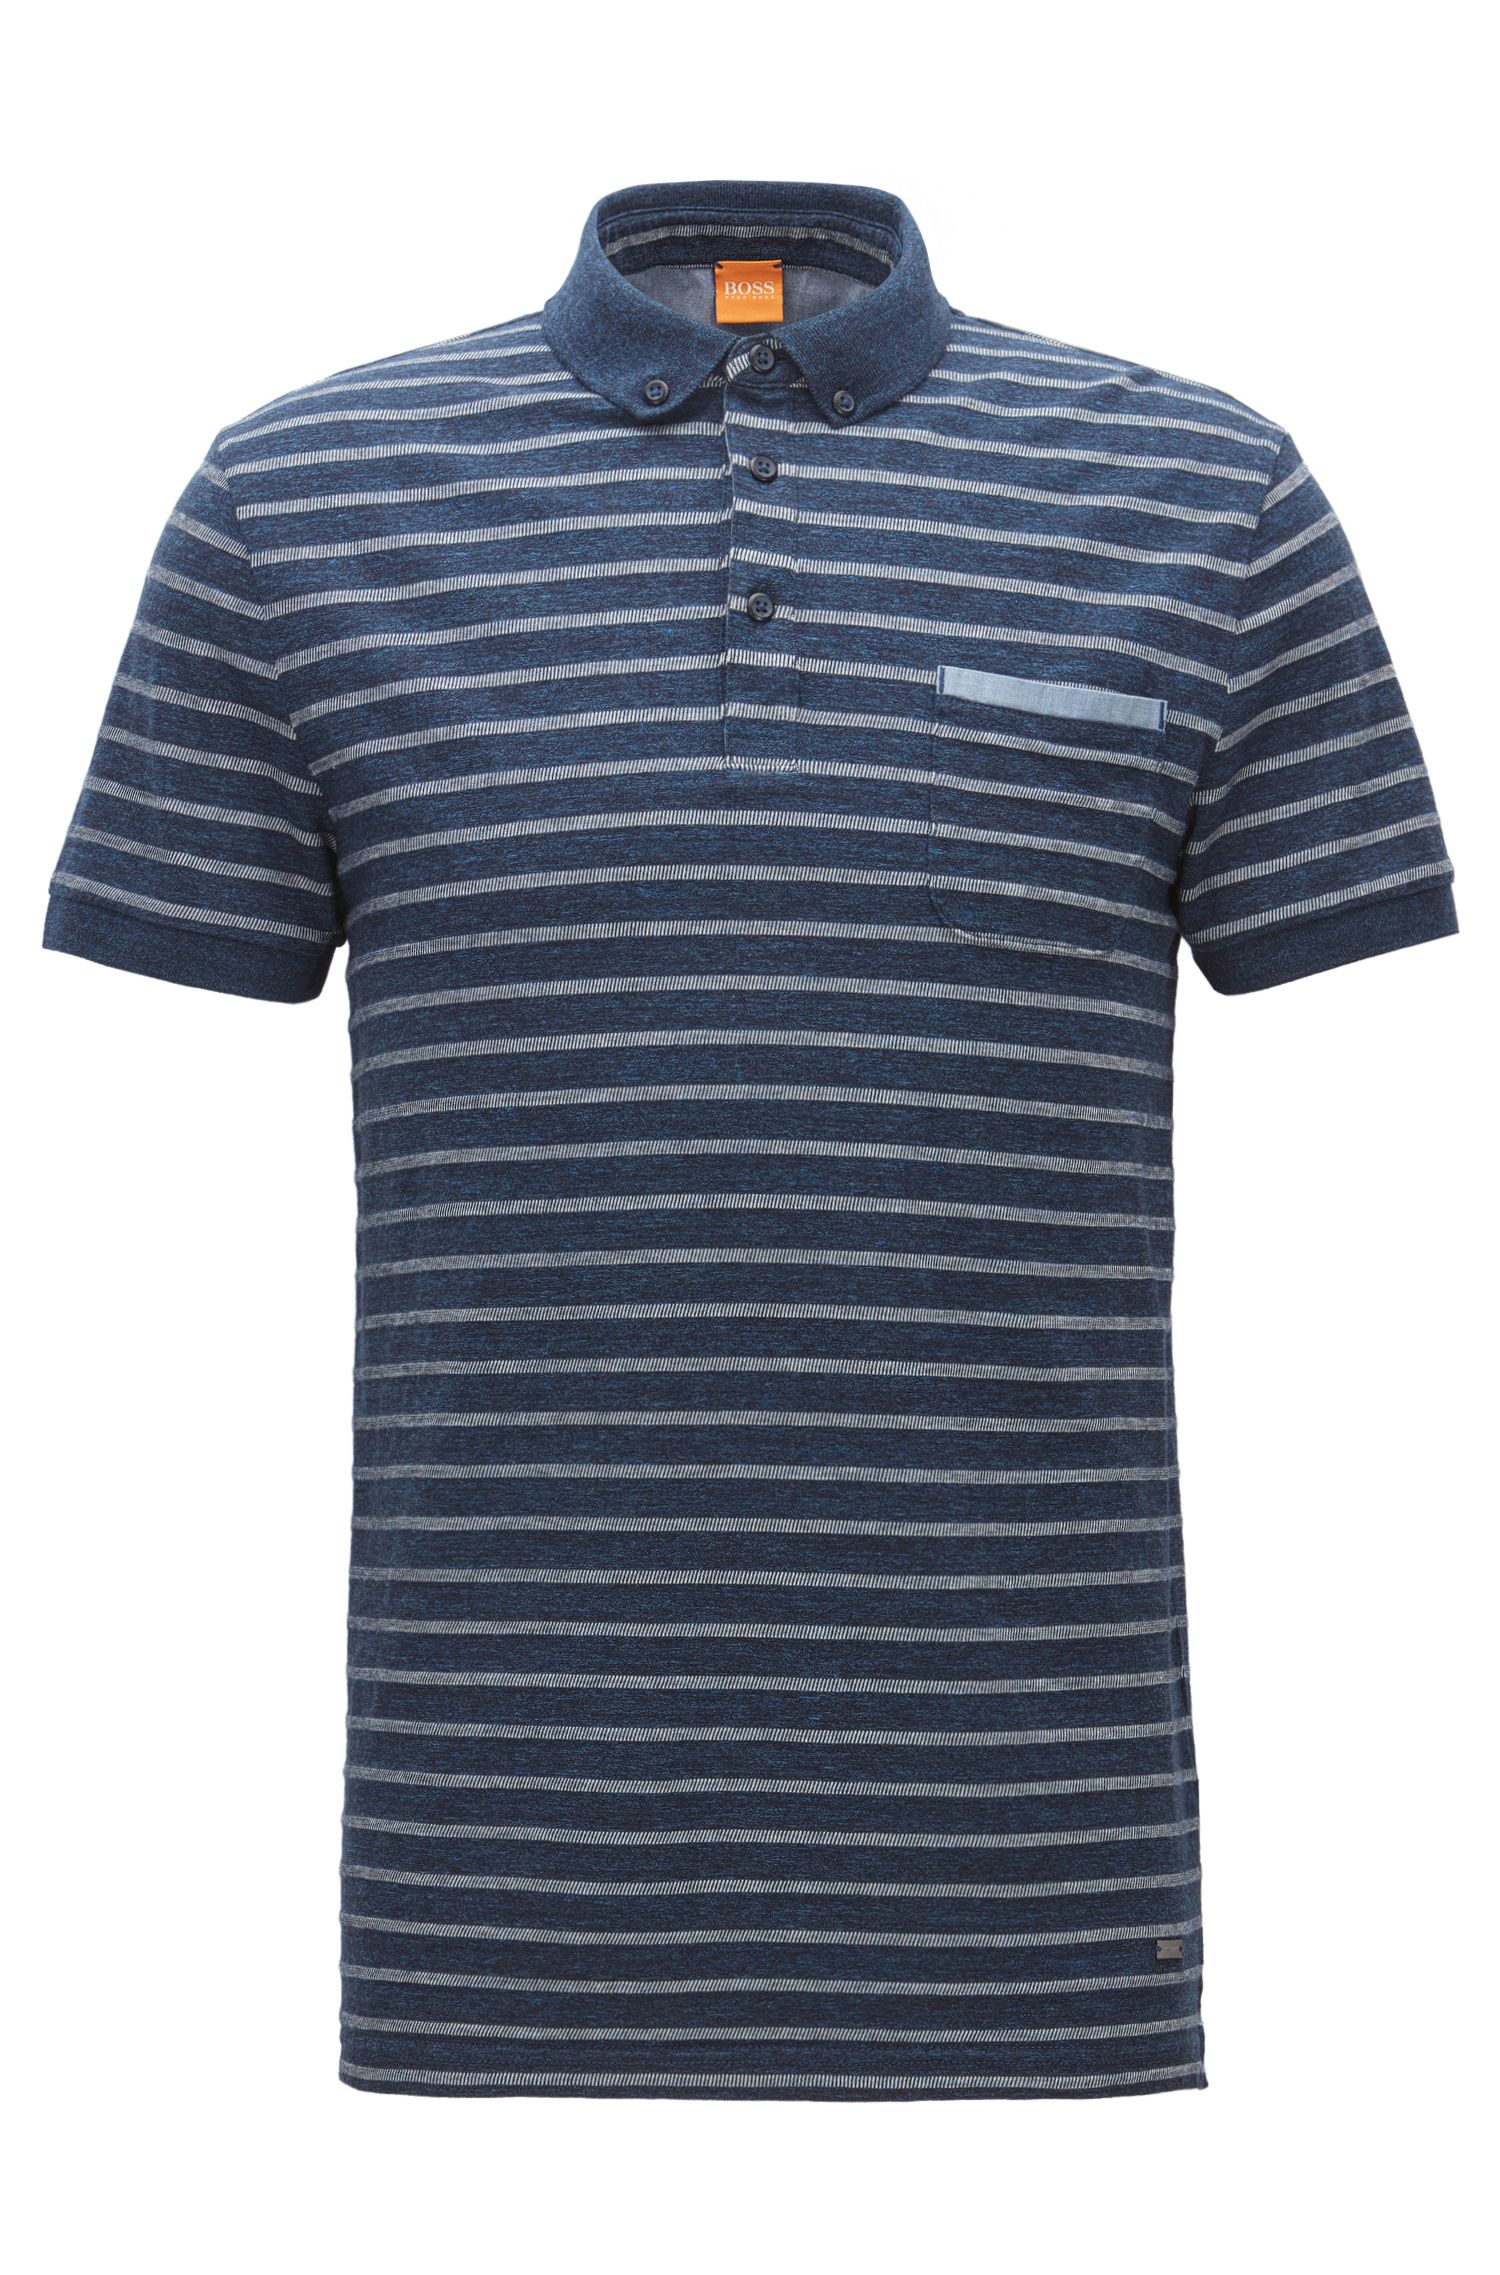 Regular-fit polo shirt in a melange jersey with jacquard stripes